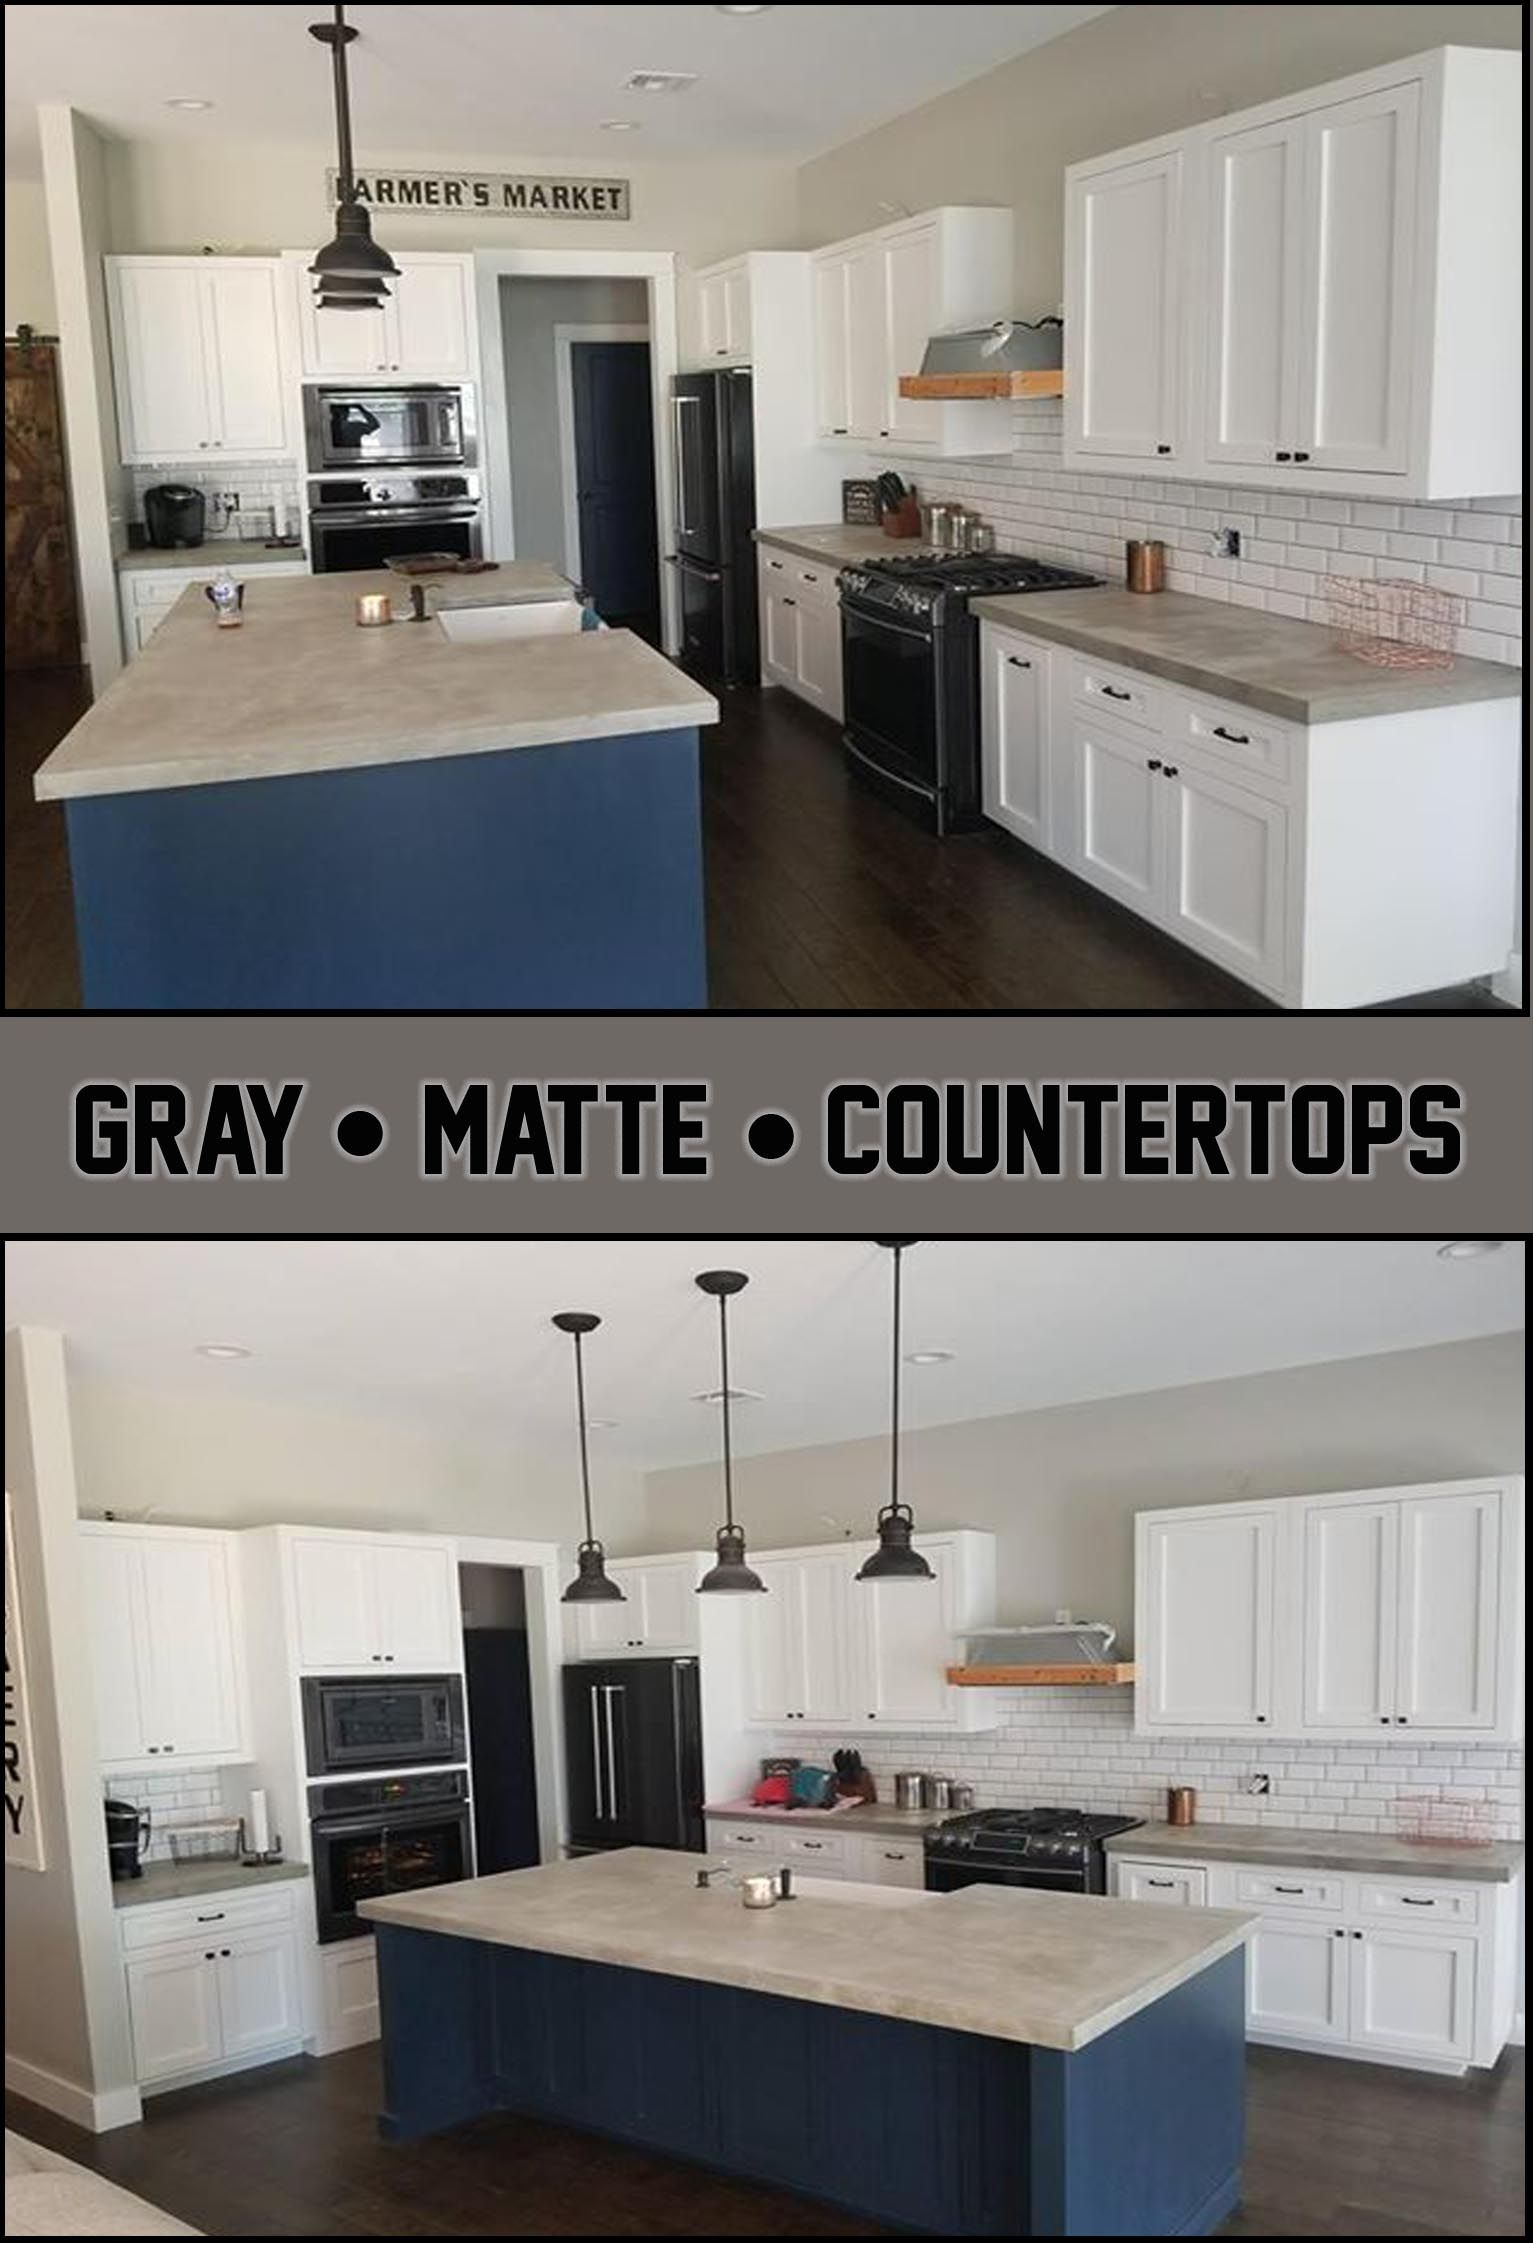 Polyurethane Sealer Countertops Outdoor Concrete Countertops Kitchen Cabinets